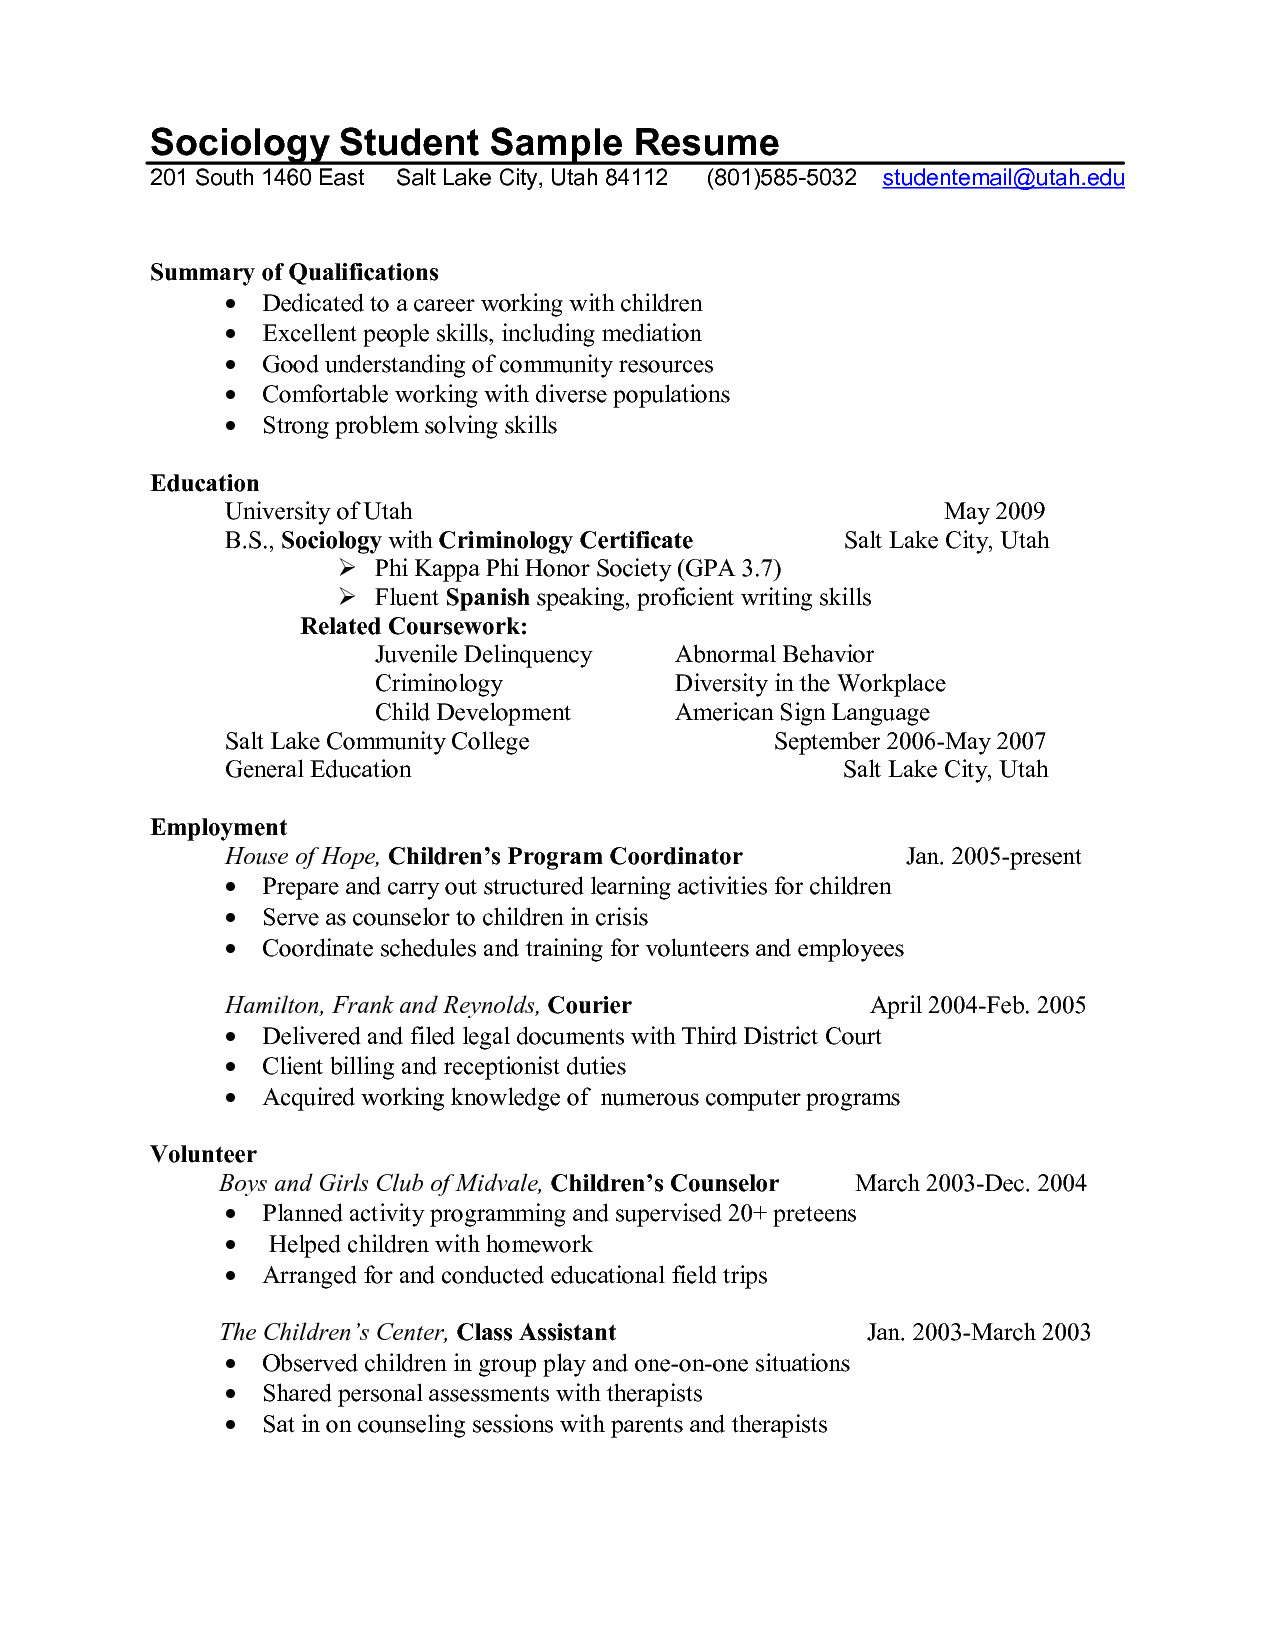 Download Resume Templates Job Interview Tips And Resume Templates Resume Templates Download Resu Student Resume Resume Examples College Resume Template